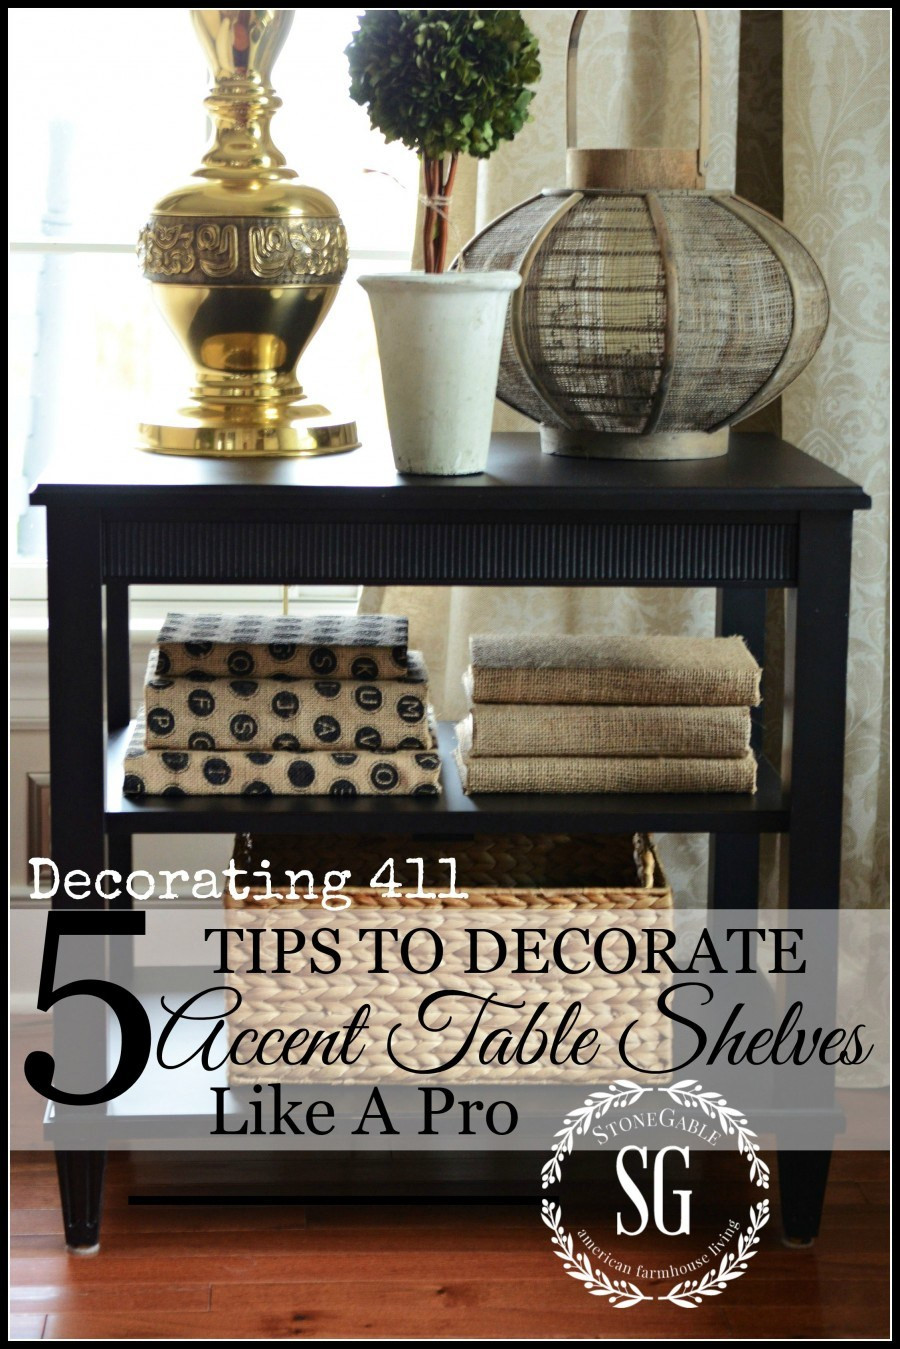 Pottery Barn Galvanized Vase Of the Art Of the Understated Table top Stonegable In 5 Tips to Decorate Accent Table Shelves Like A Pro Heres A Few Tips that